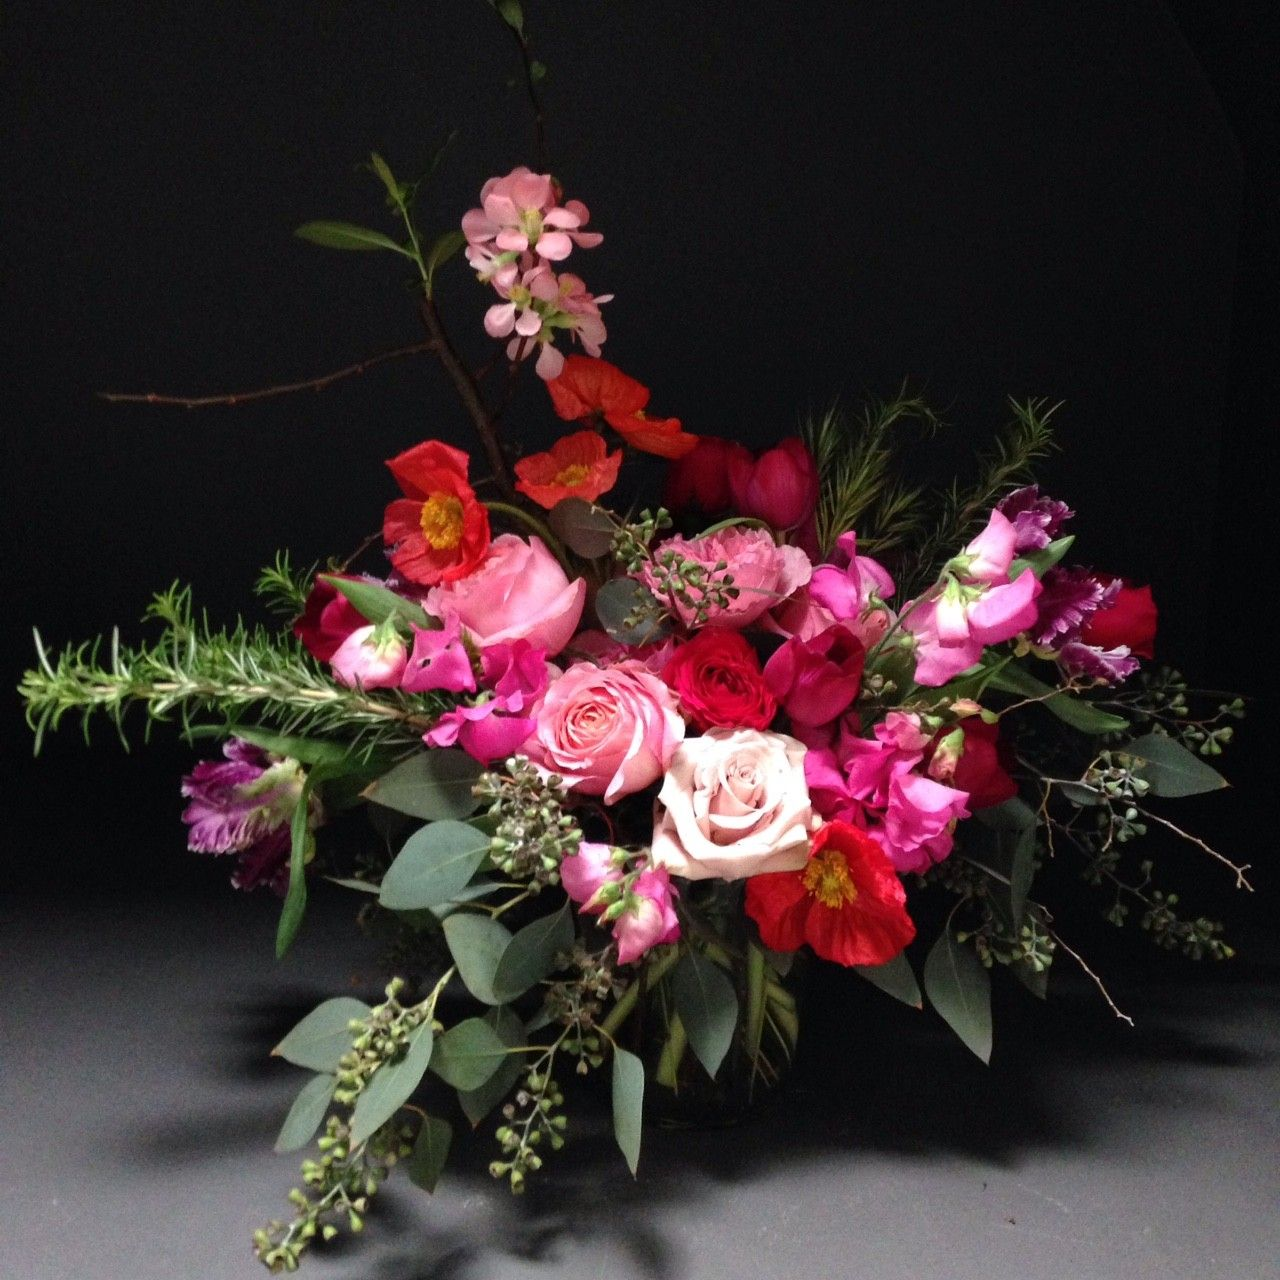 50 Shades Of Pink By The Black Rose 13500 Floral Boquets